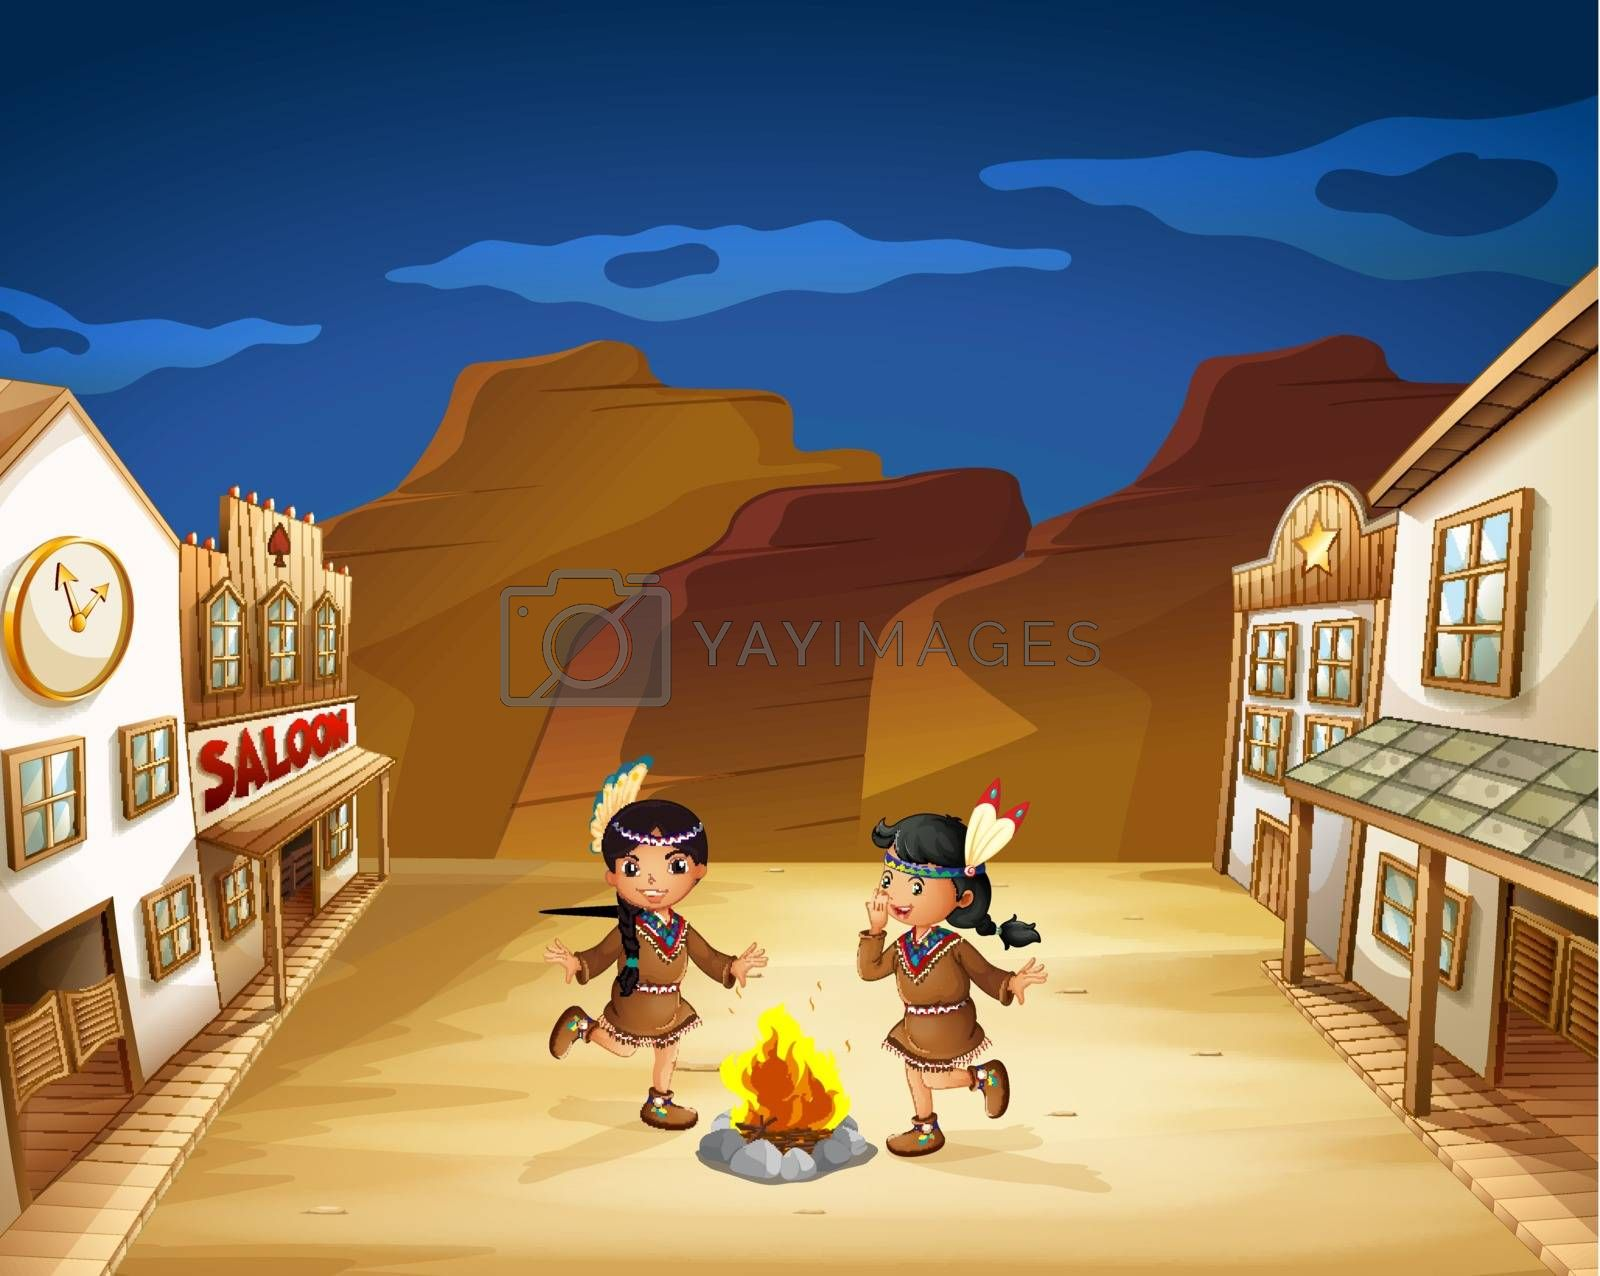 Illustration of the two Indian girls dancing around the fire